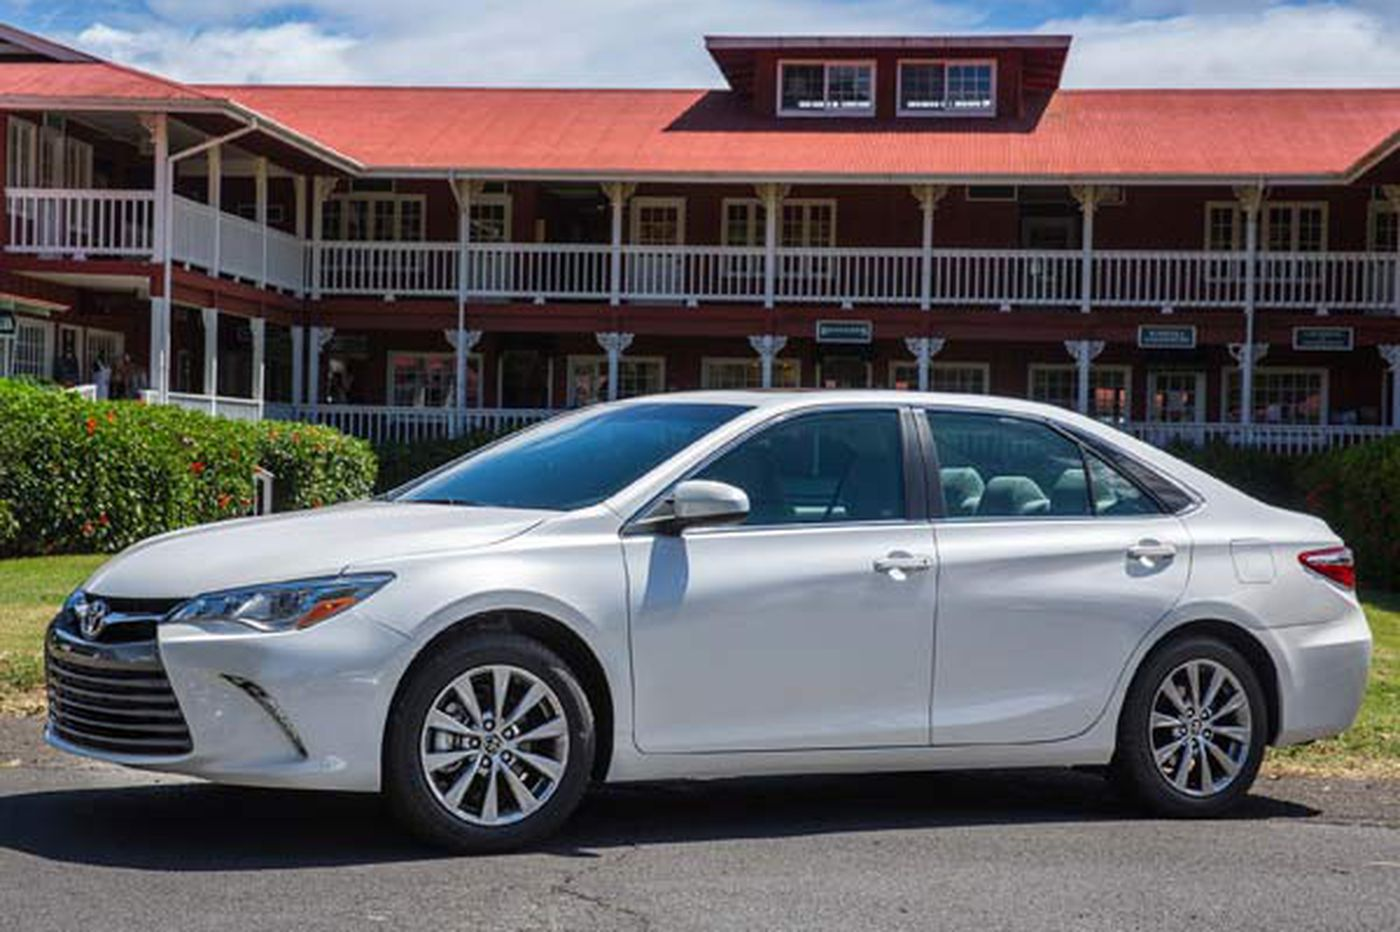 Auto review: Toyota Camry defies reputation